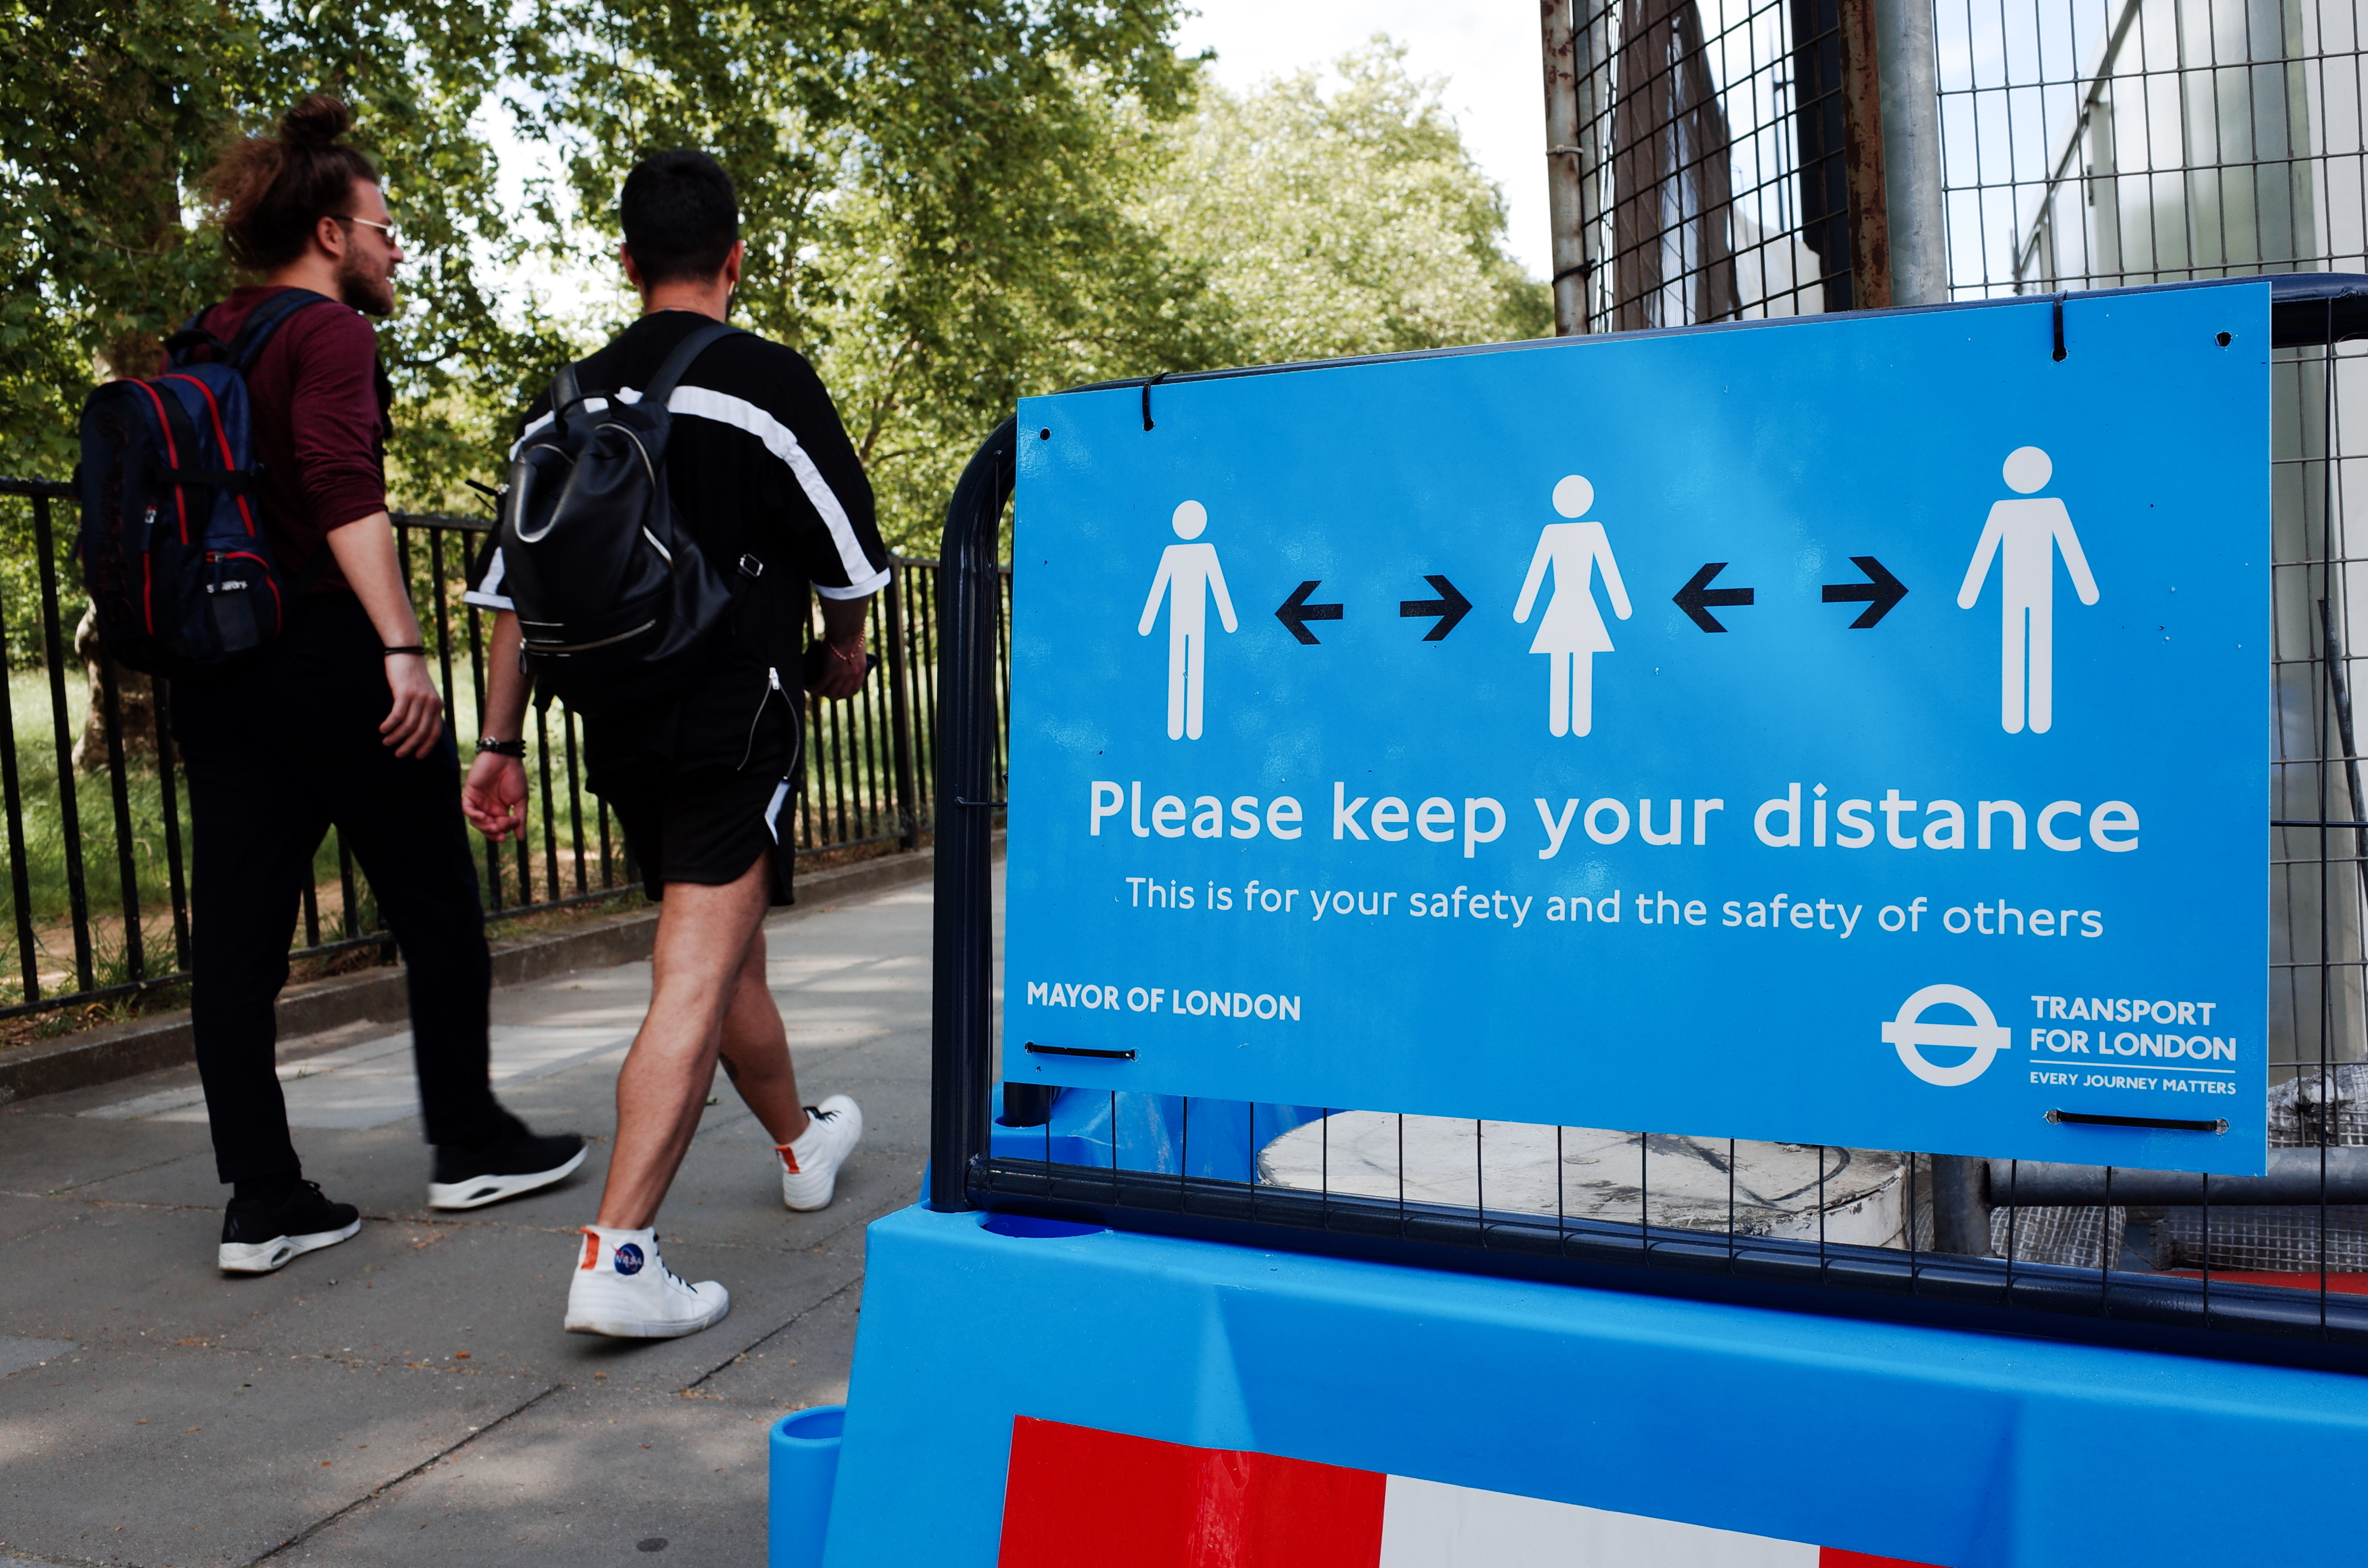 Two men walk past a sign reminding people to observe social distancing on Park Lane in London, England, on May 18, 2020. Britain began its ninth week of coronavirus lockdown today, a day after the lowest reported covid-19 death toll (170) across the country since March. A day of even lower covid-19 fatalities today (160) is meanwhile cementing hopes that the UK is firmly into the recovery phase of its coronavirus crisis, and that its continued emergence from lockdown will be able to carry on as planned. (Photo by David Cliff/NurPhoto via Getty Images)